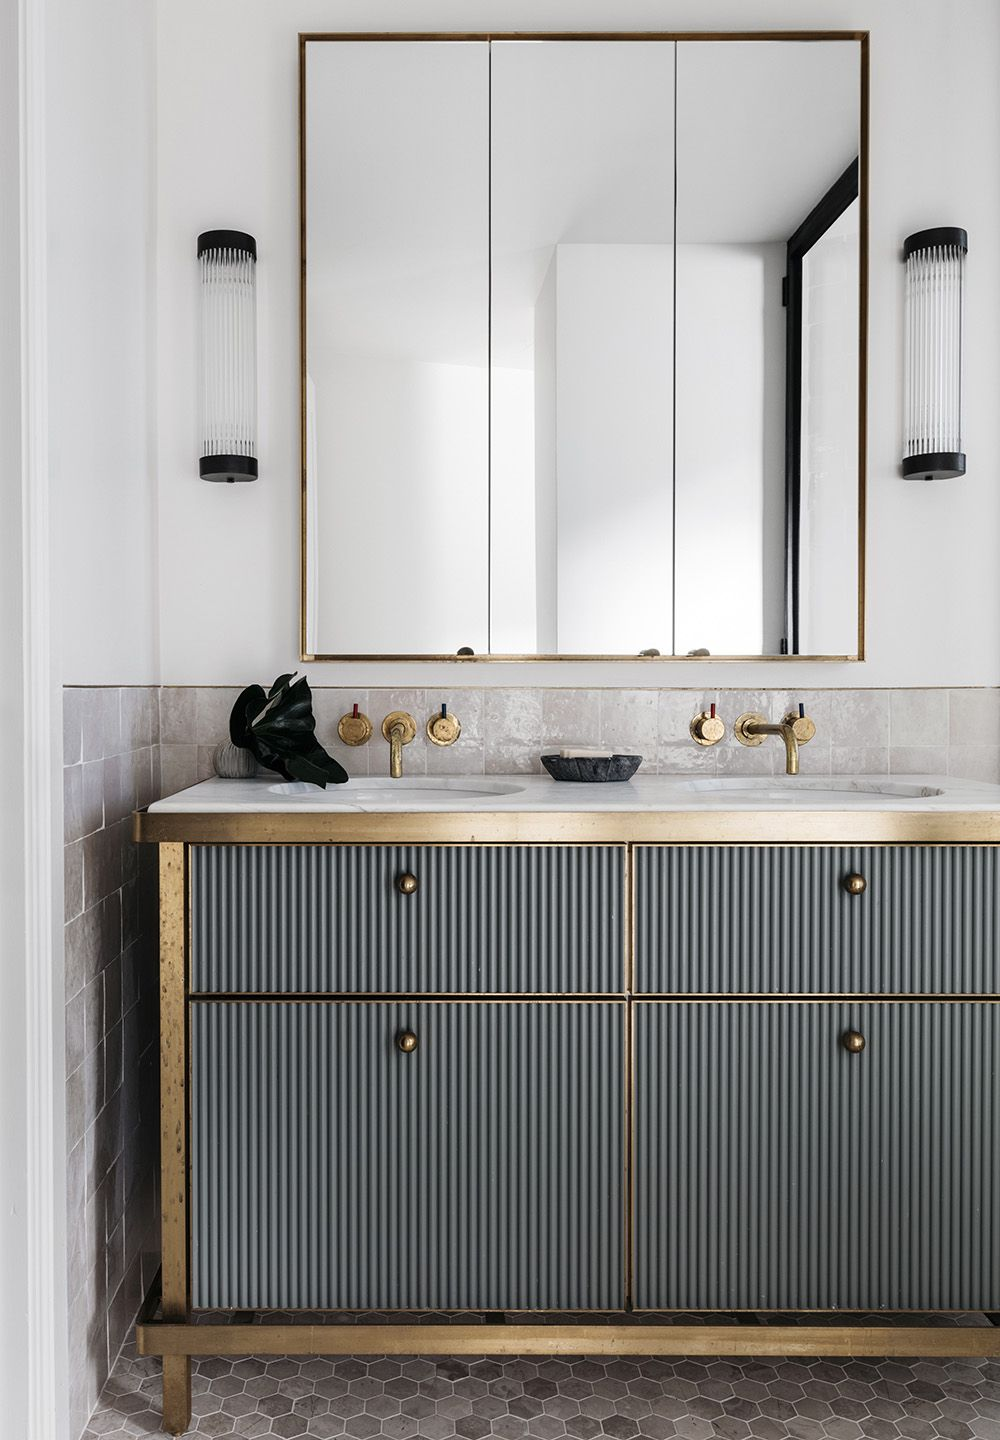 Art Deco Bathroom Vanity. See All Our Stylish Art Deco Bathrooms Design Ideas Art Deco Inspired Black And White Design